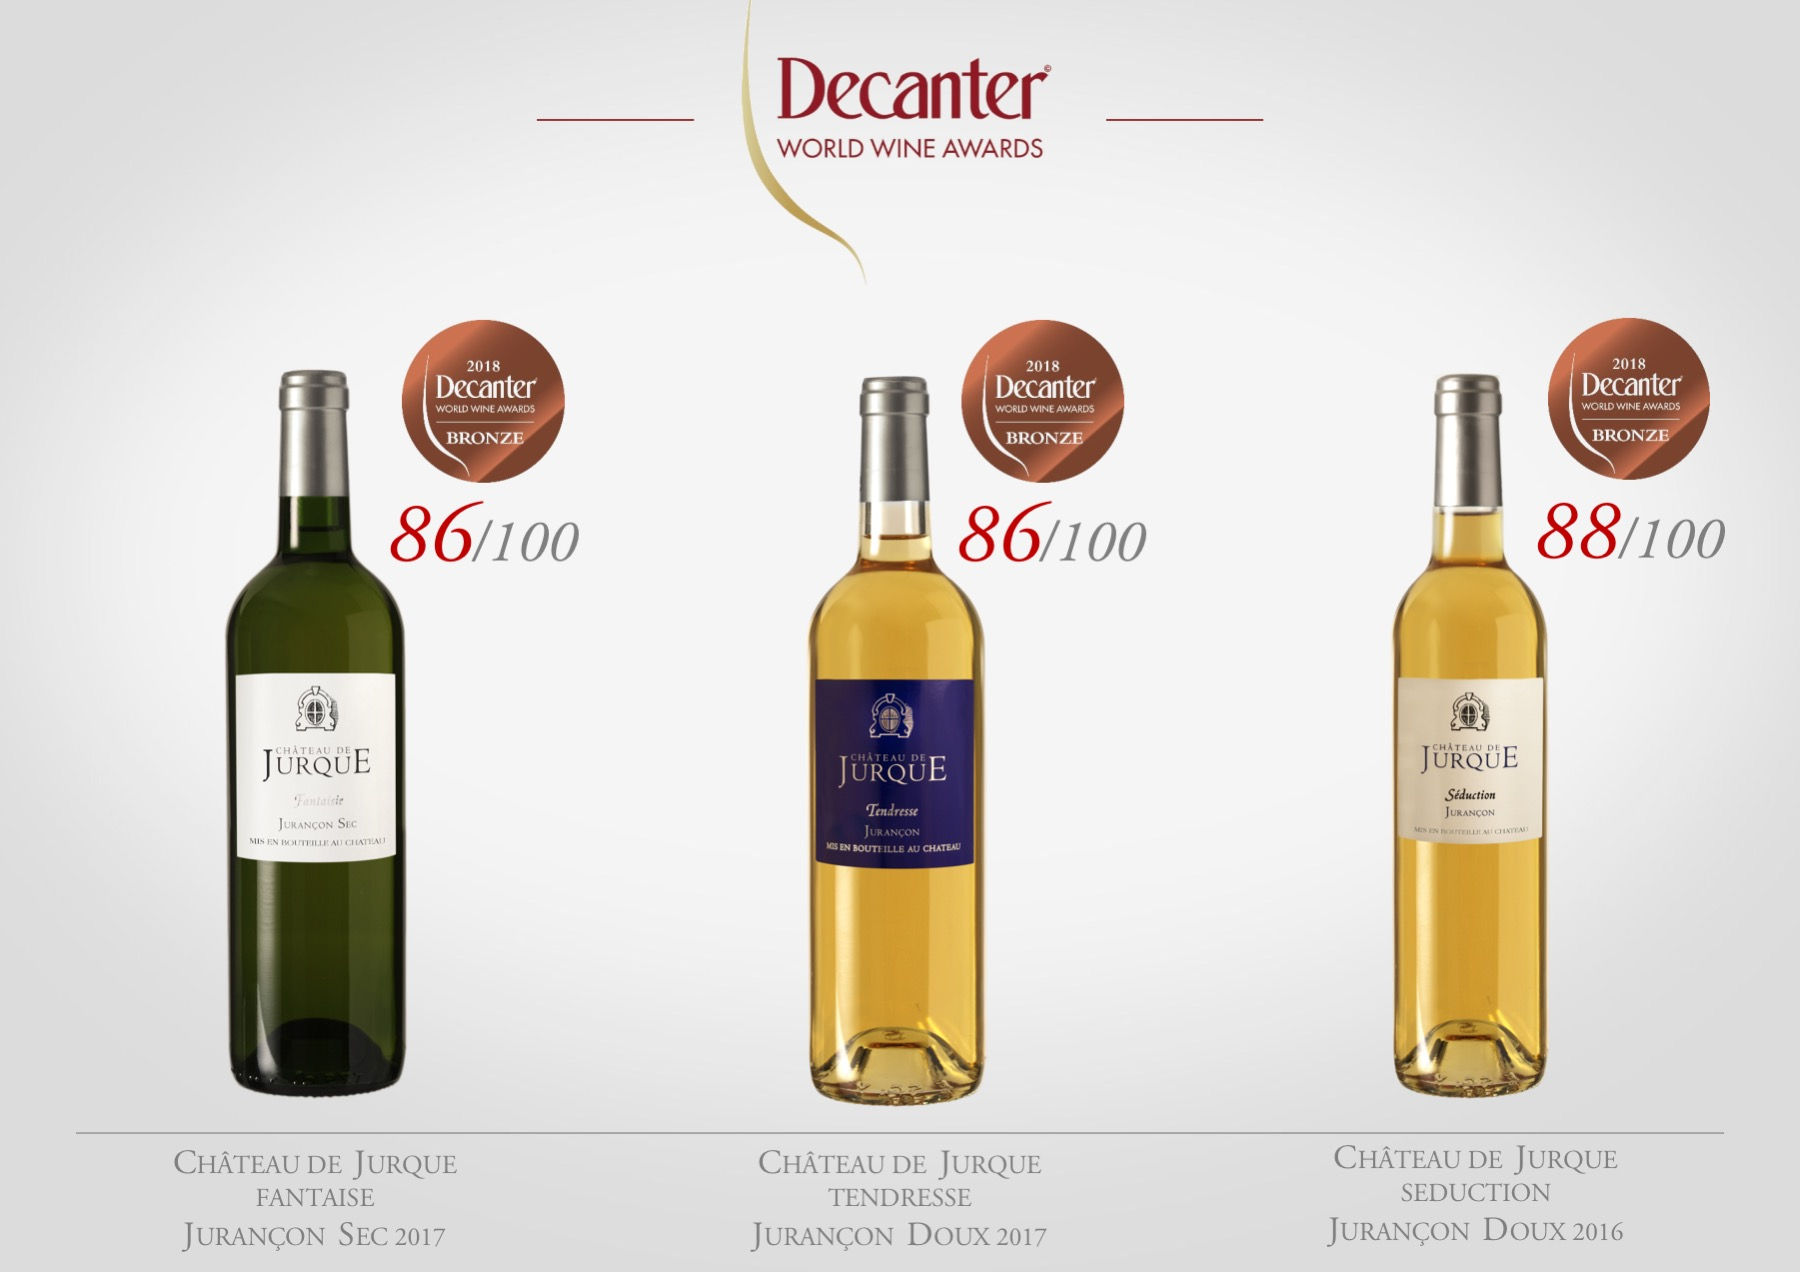 Decanter Awards 2018 - Chateau de Jurque